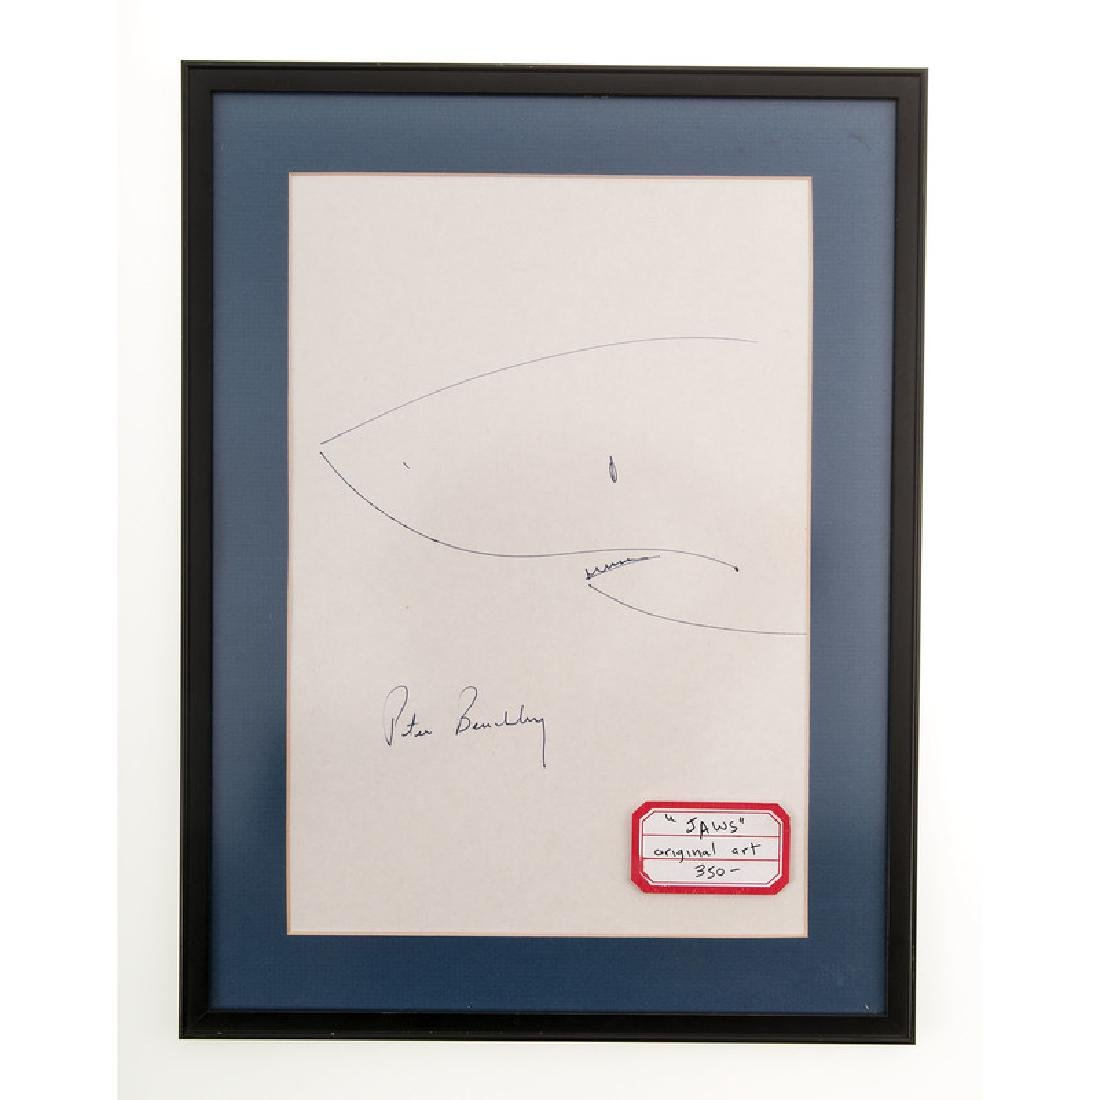 Peter Benchley Signed 'Jaws' Drawing